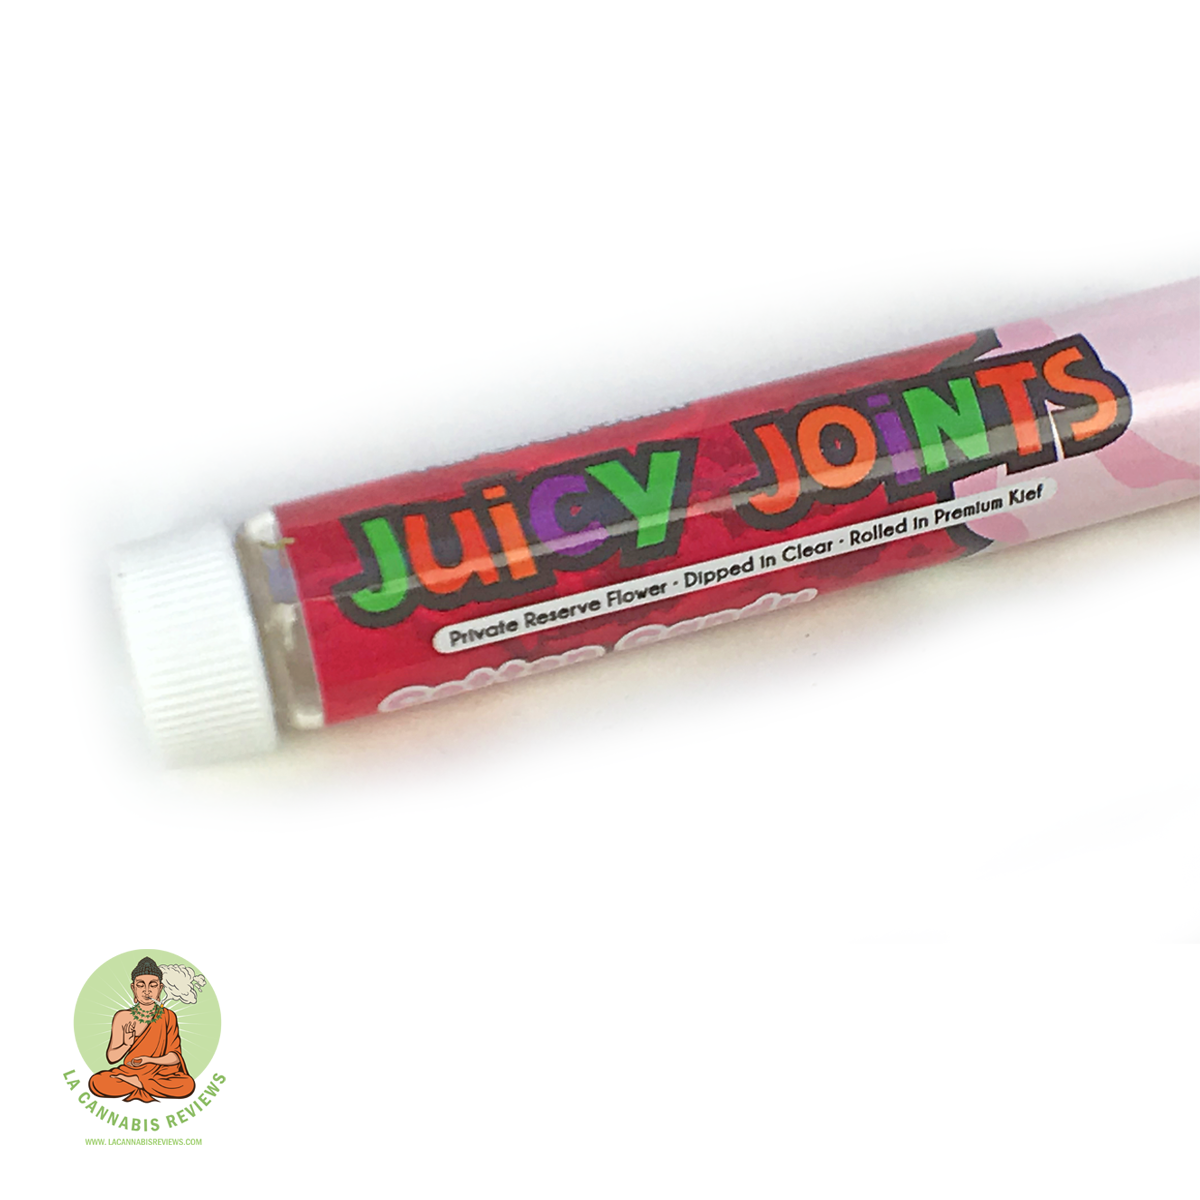 Juicy-Joints-Cotton-Candy-Mouth-Church-ofWalnut2